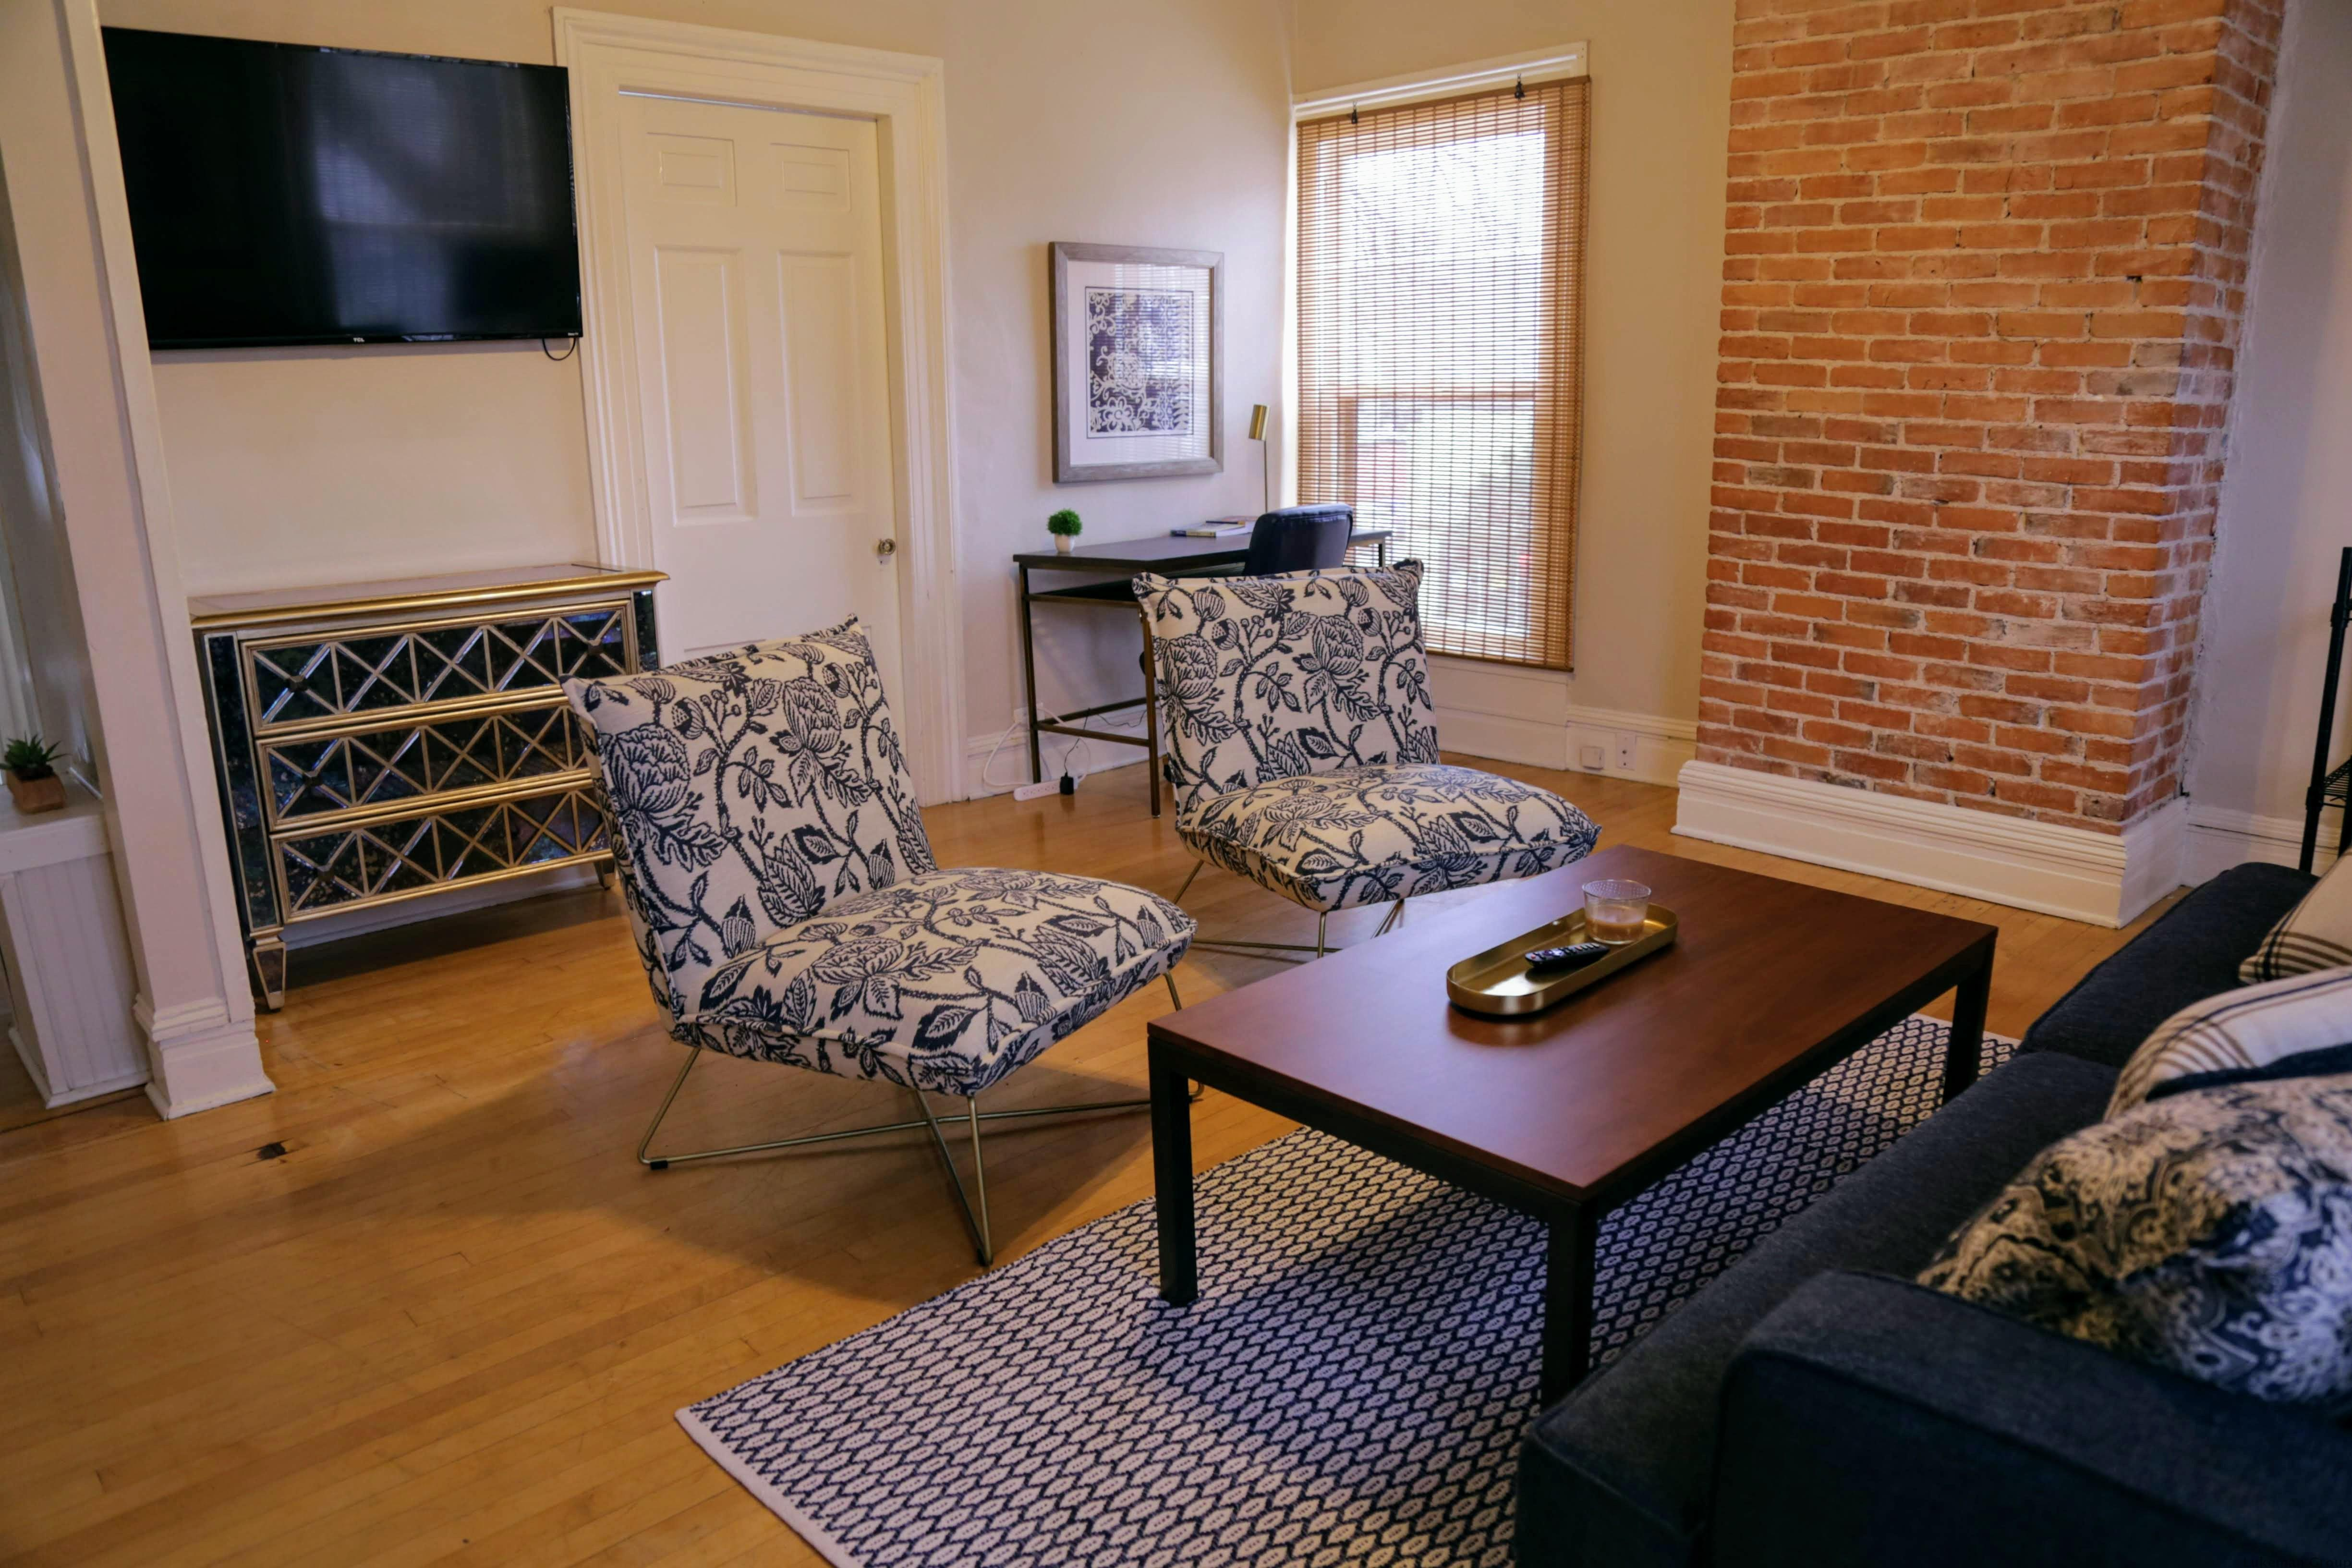 447 W Vine St for rent